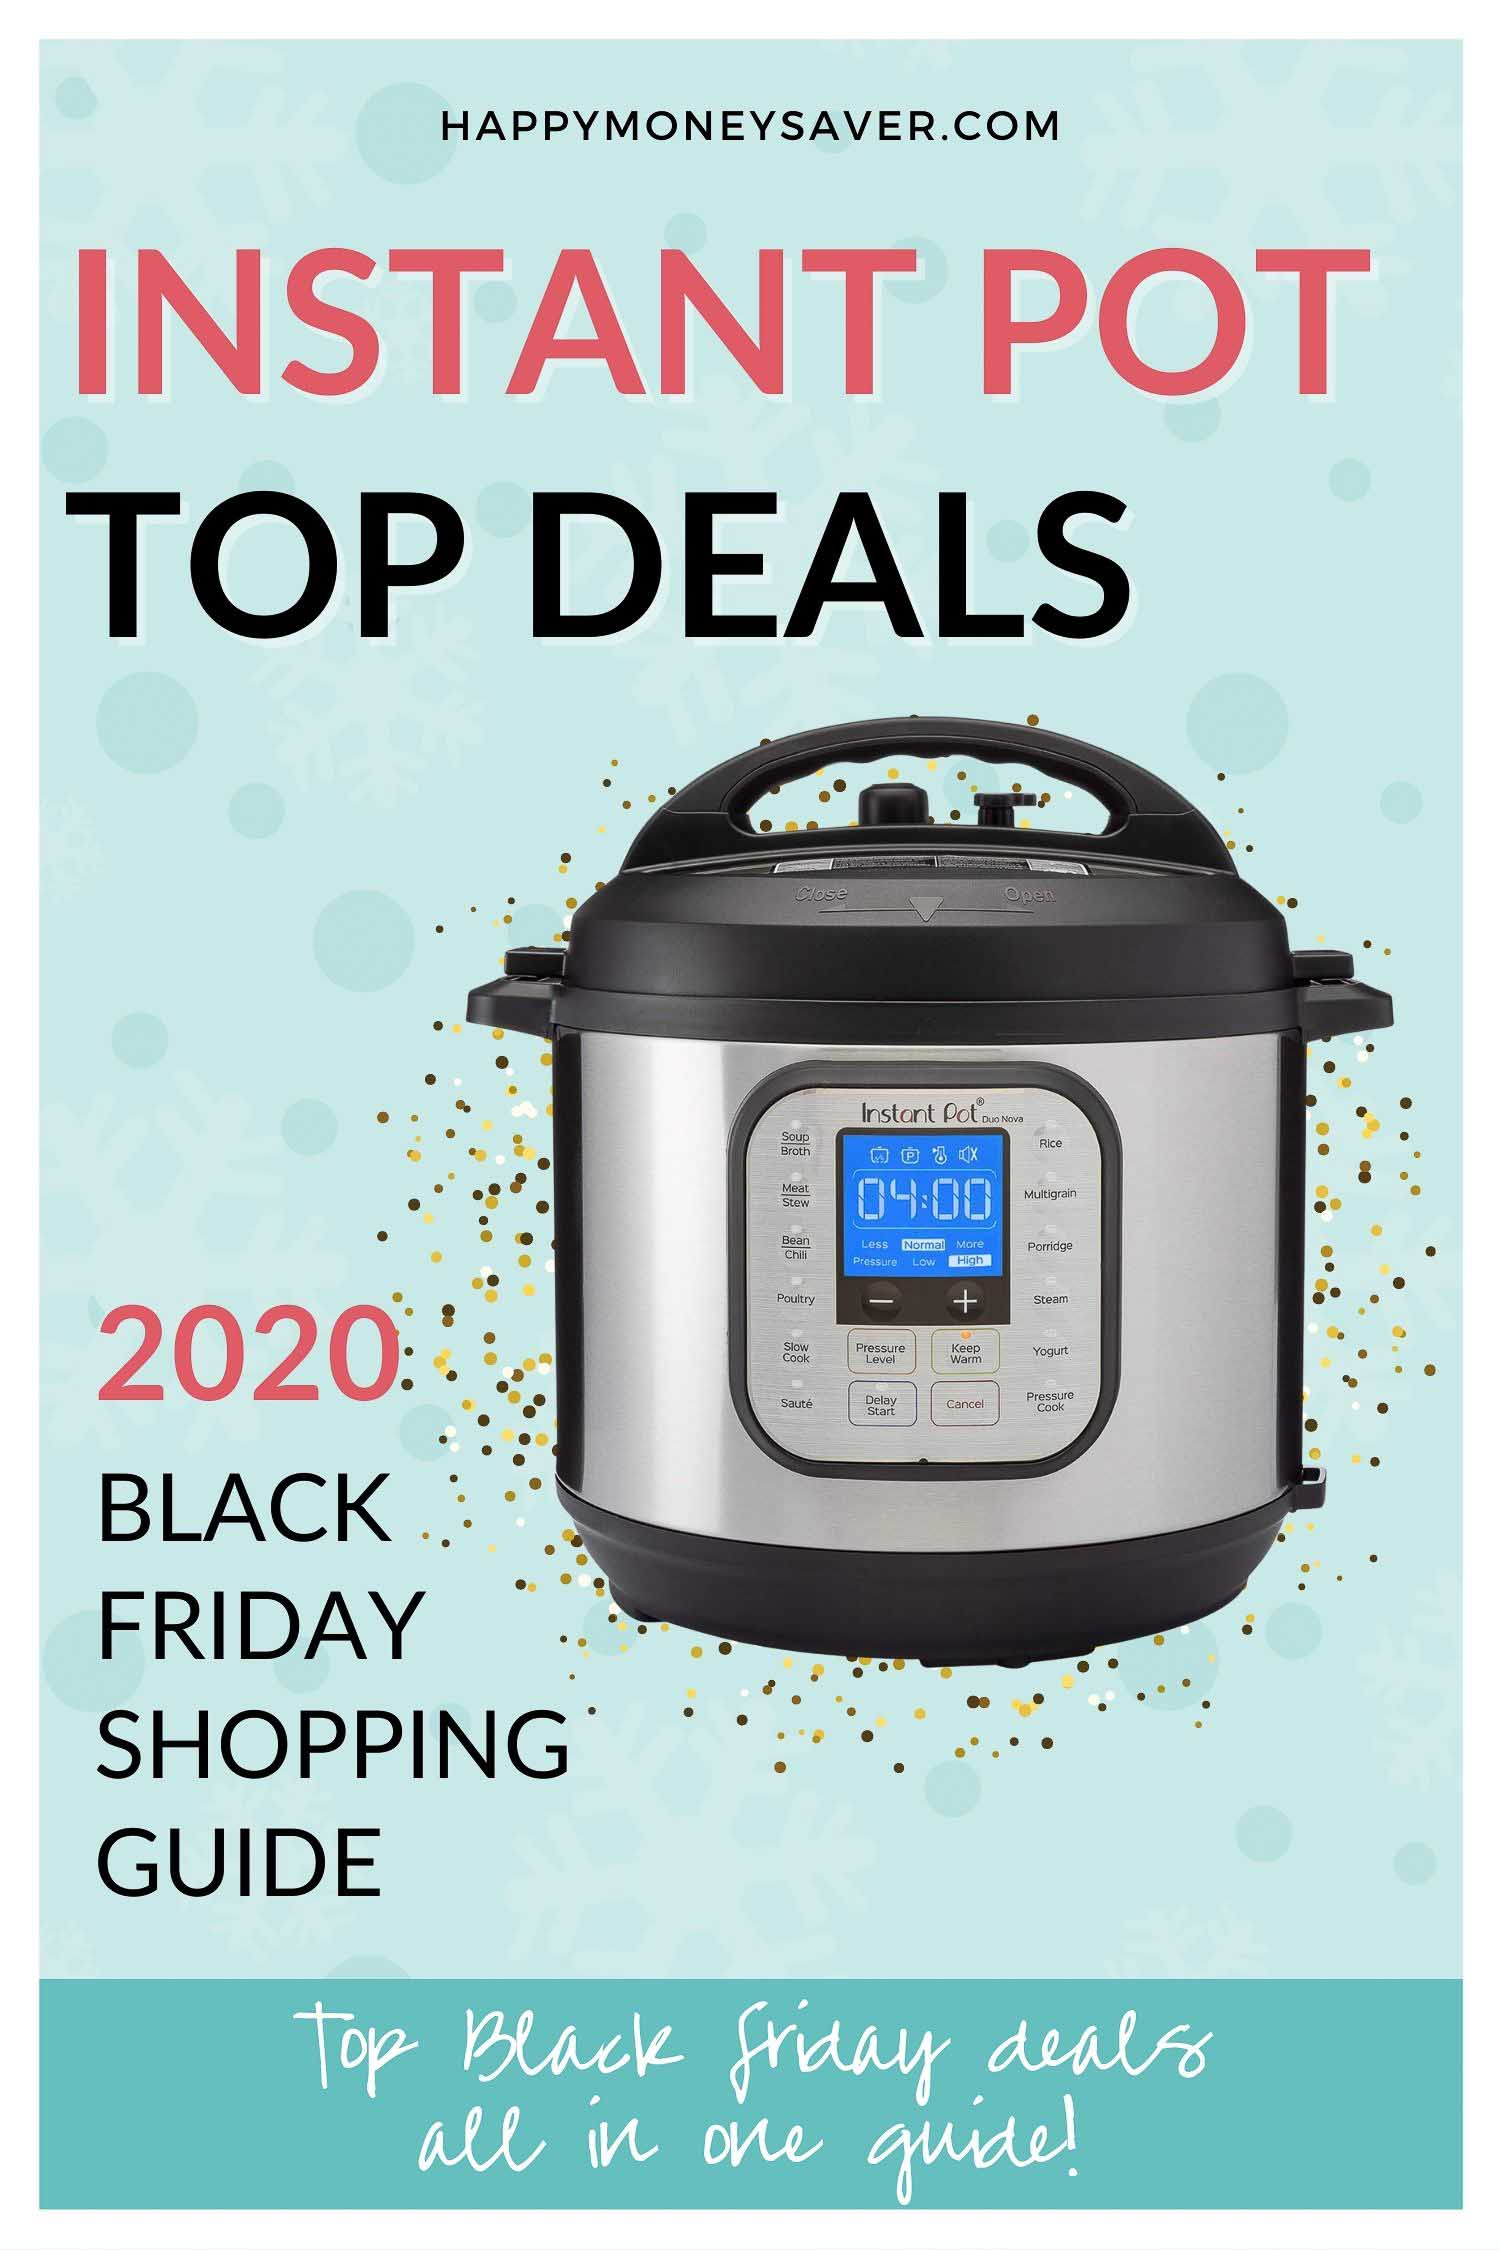 graphic with Top Instant Pot Deals for Black Friday 2020 with amazon links included text and an instant pot showing.